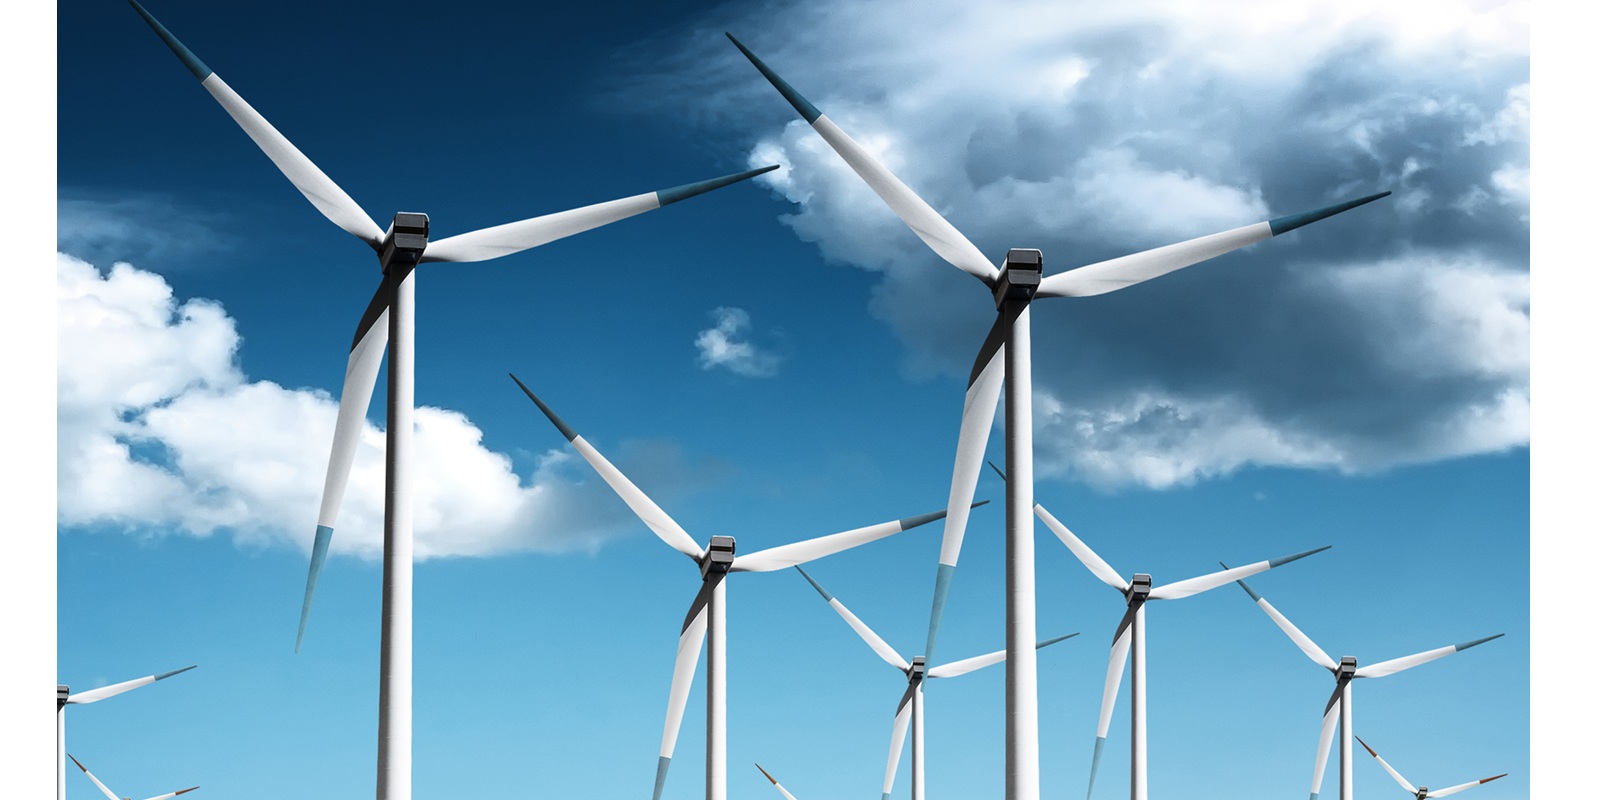 Temperature And Humidity Sensors For Industrial Use Wind Power Diagrams Ensuring Reliability The Industry